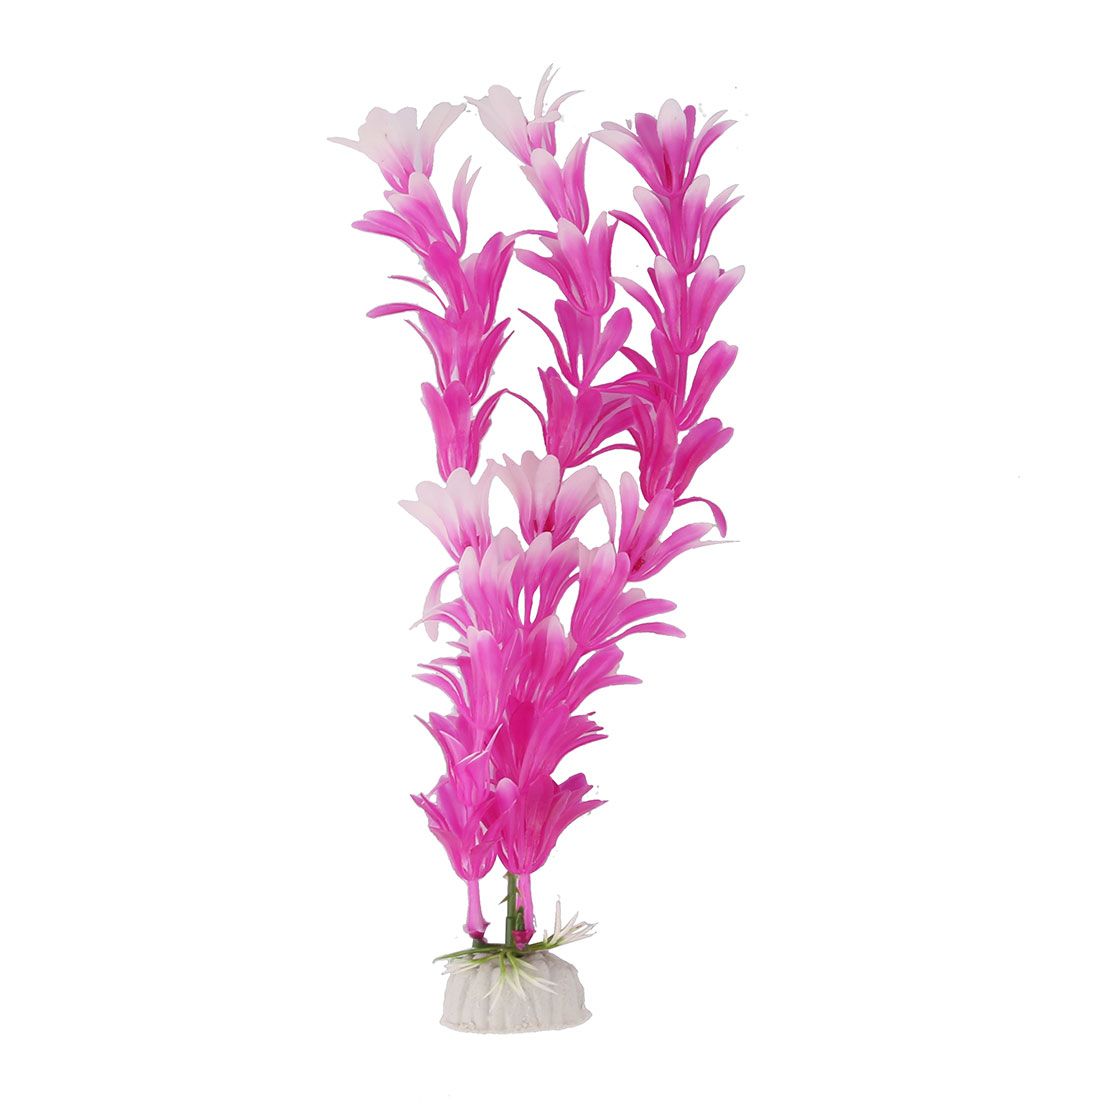 Aquarium Fish Tank Ceramic Base Plastic Artificial Plant Ornament Purple White